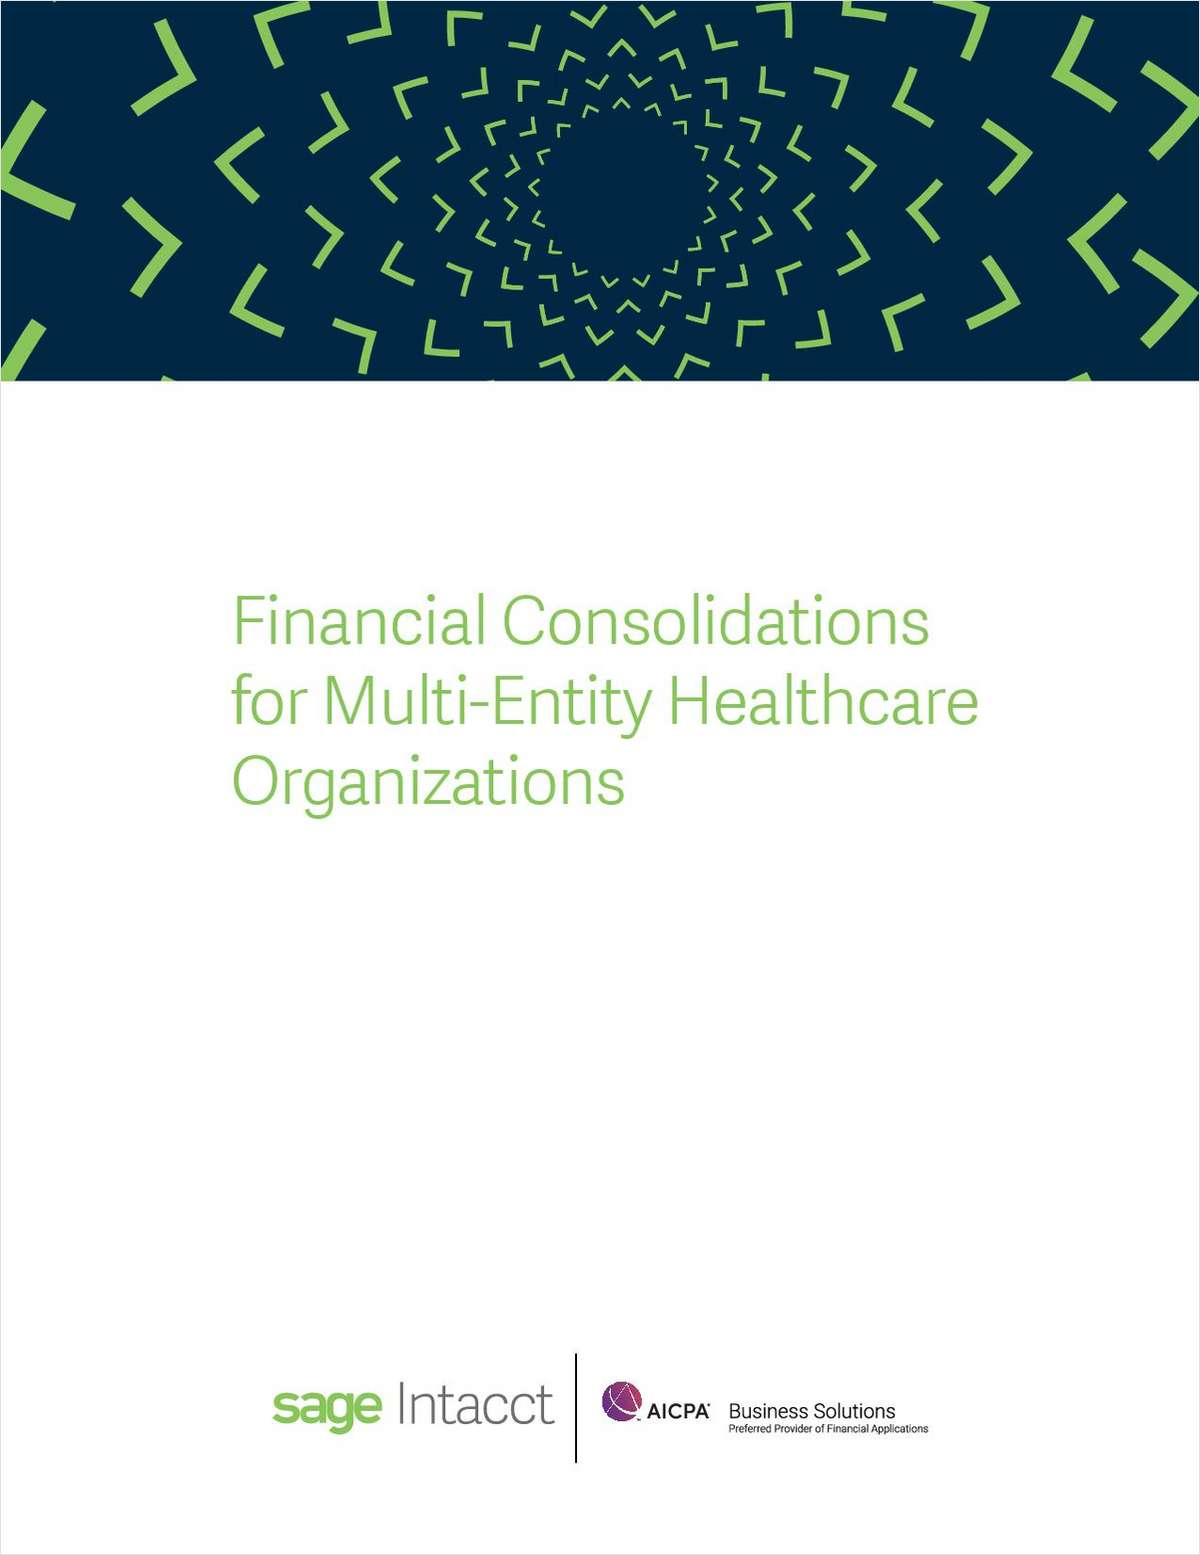 Financial Consolidations for Multi-Entity Healthcare Organizations